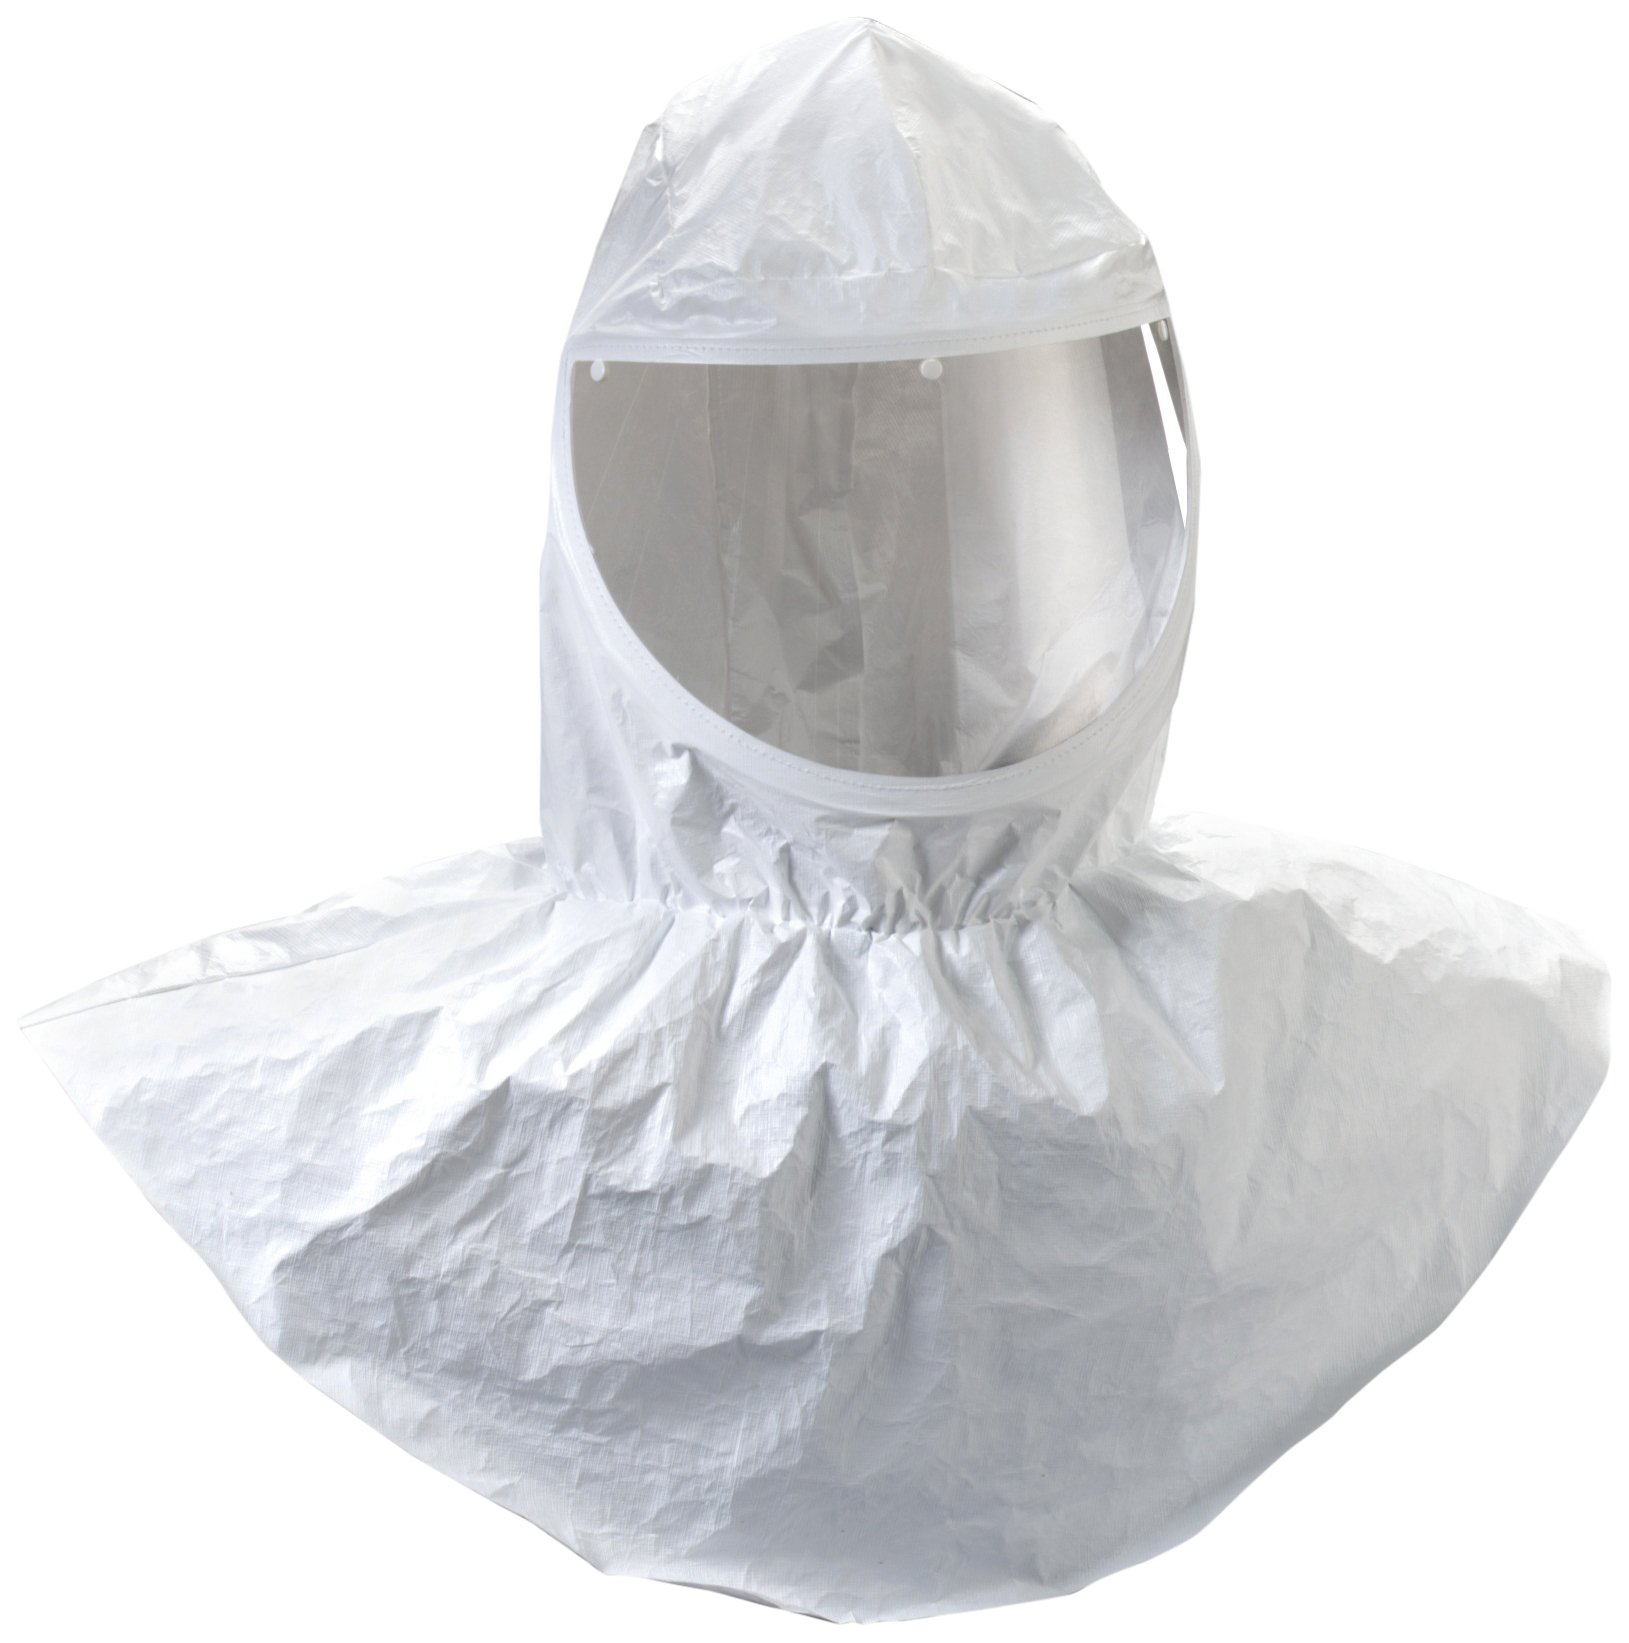 3M H-410-10 Tychem QC Hood with Collar (Pack of 10)